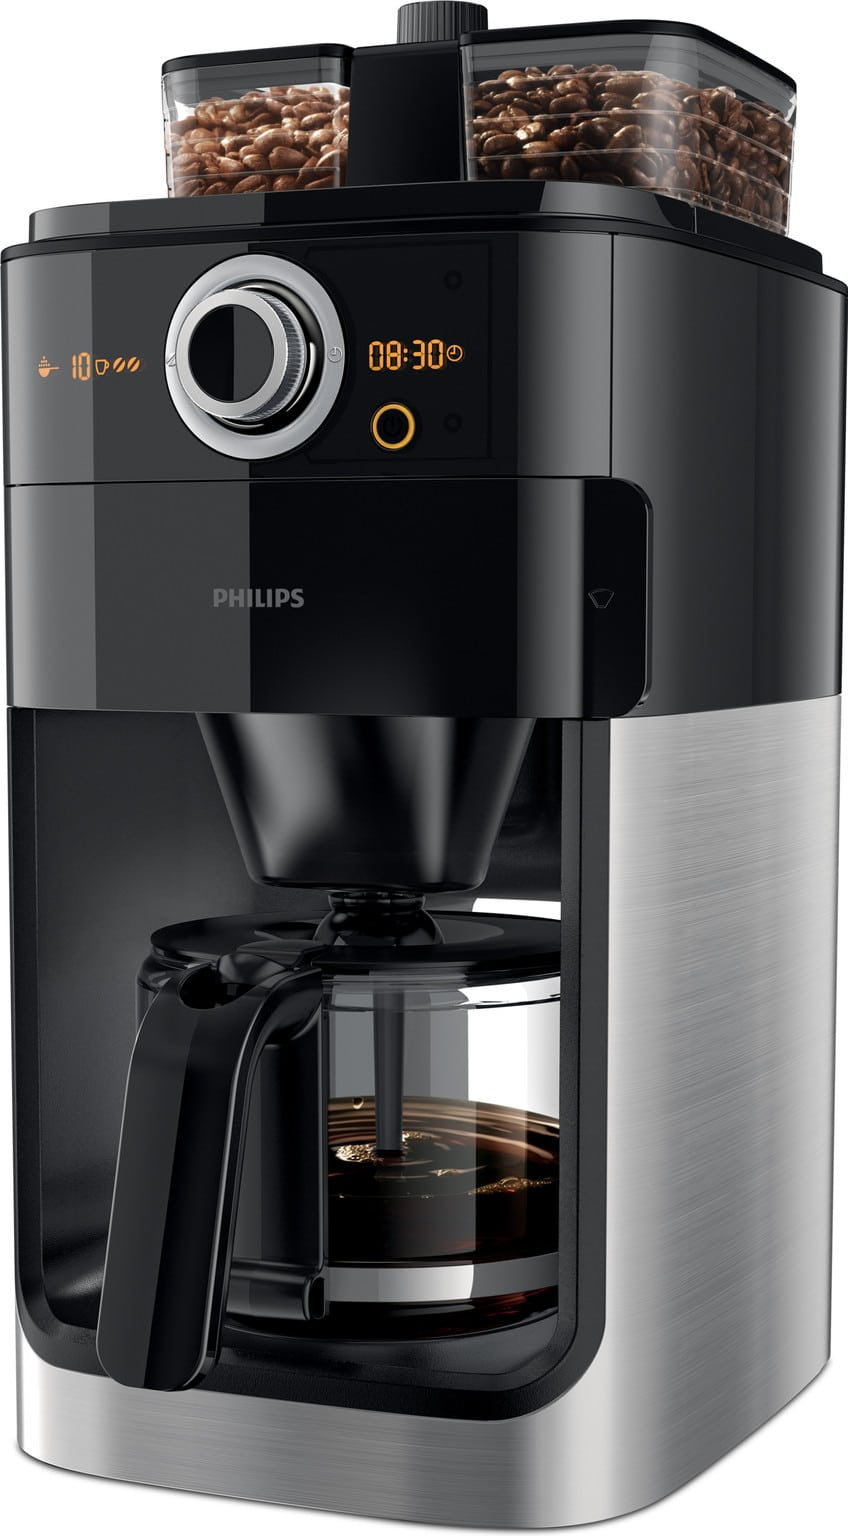 Philips koffiezetapparaat bonen filter